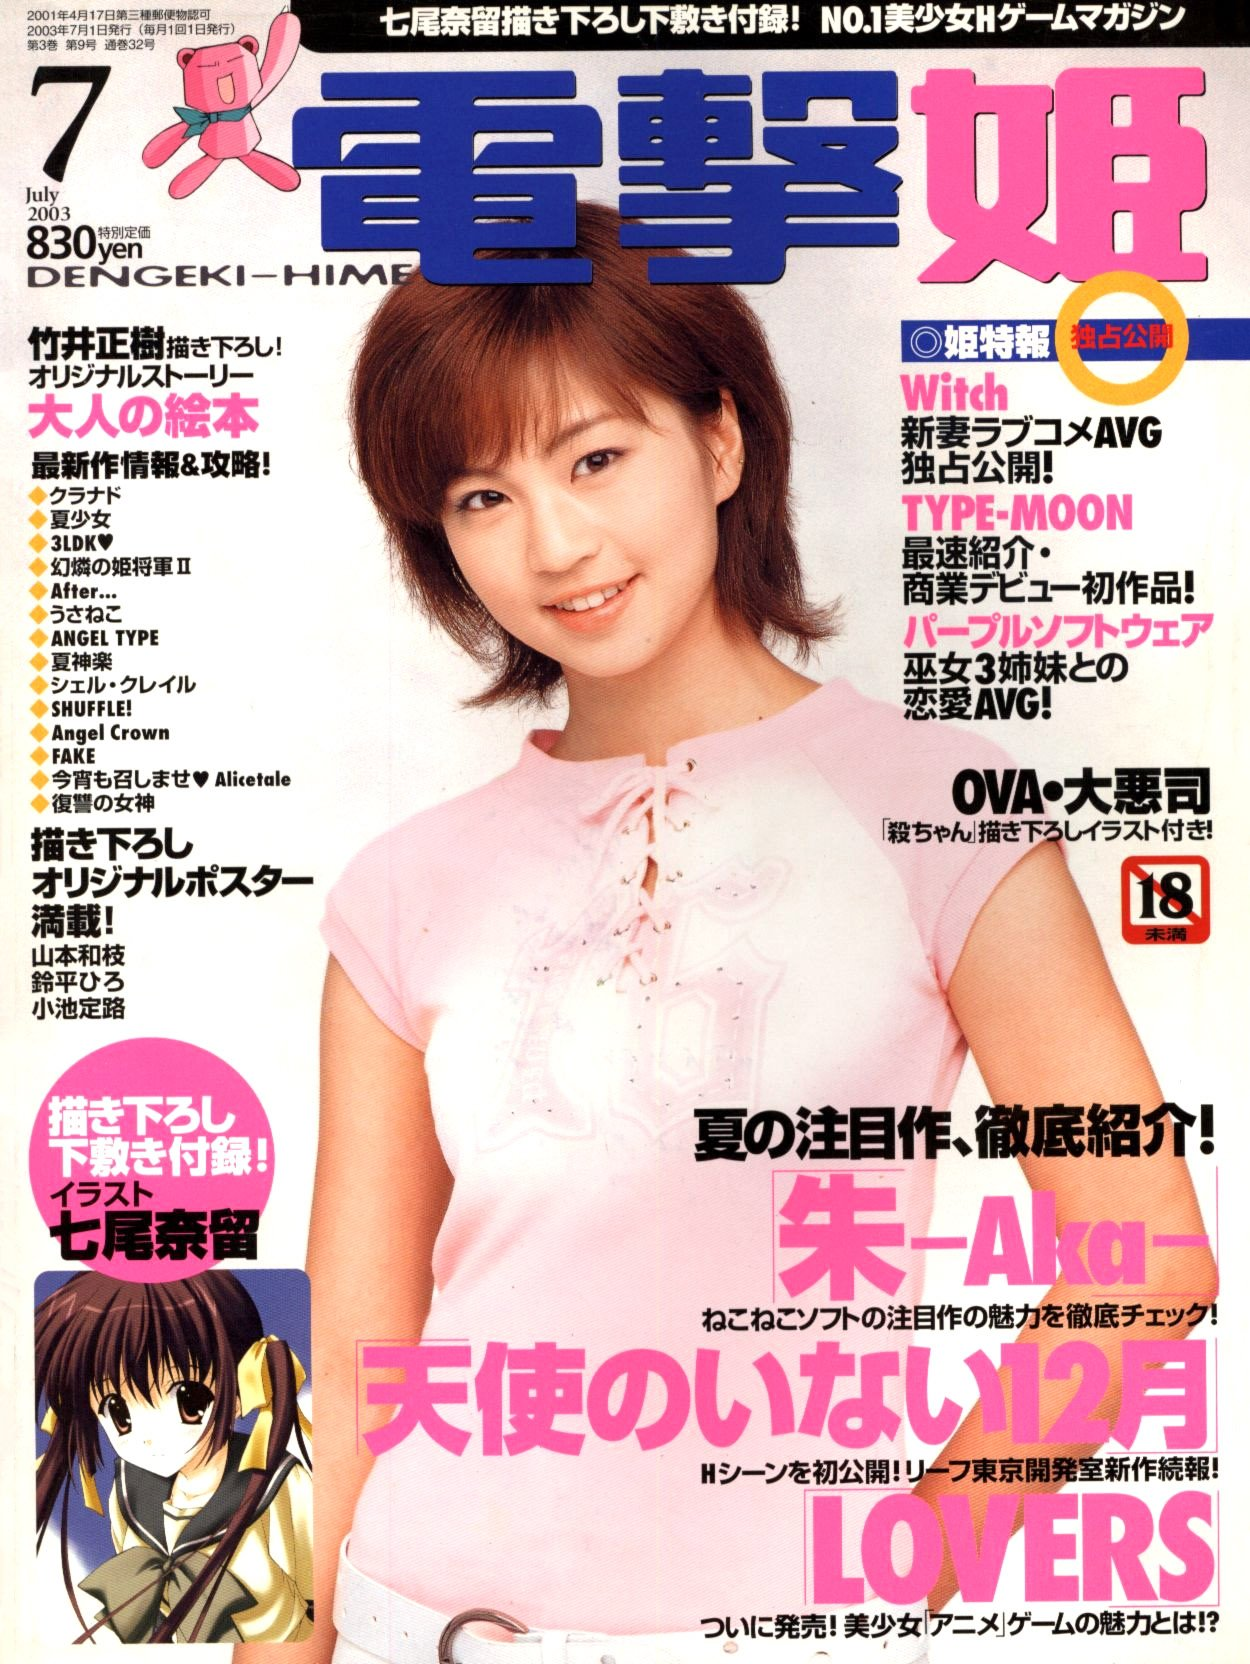 Dengeki Hime Issue 040 (July 2003)